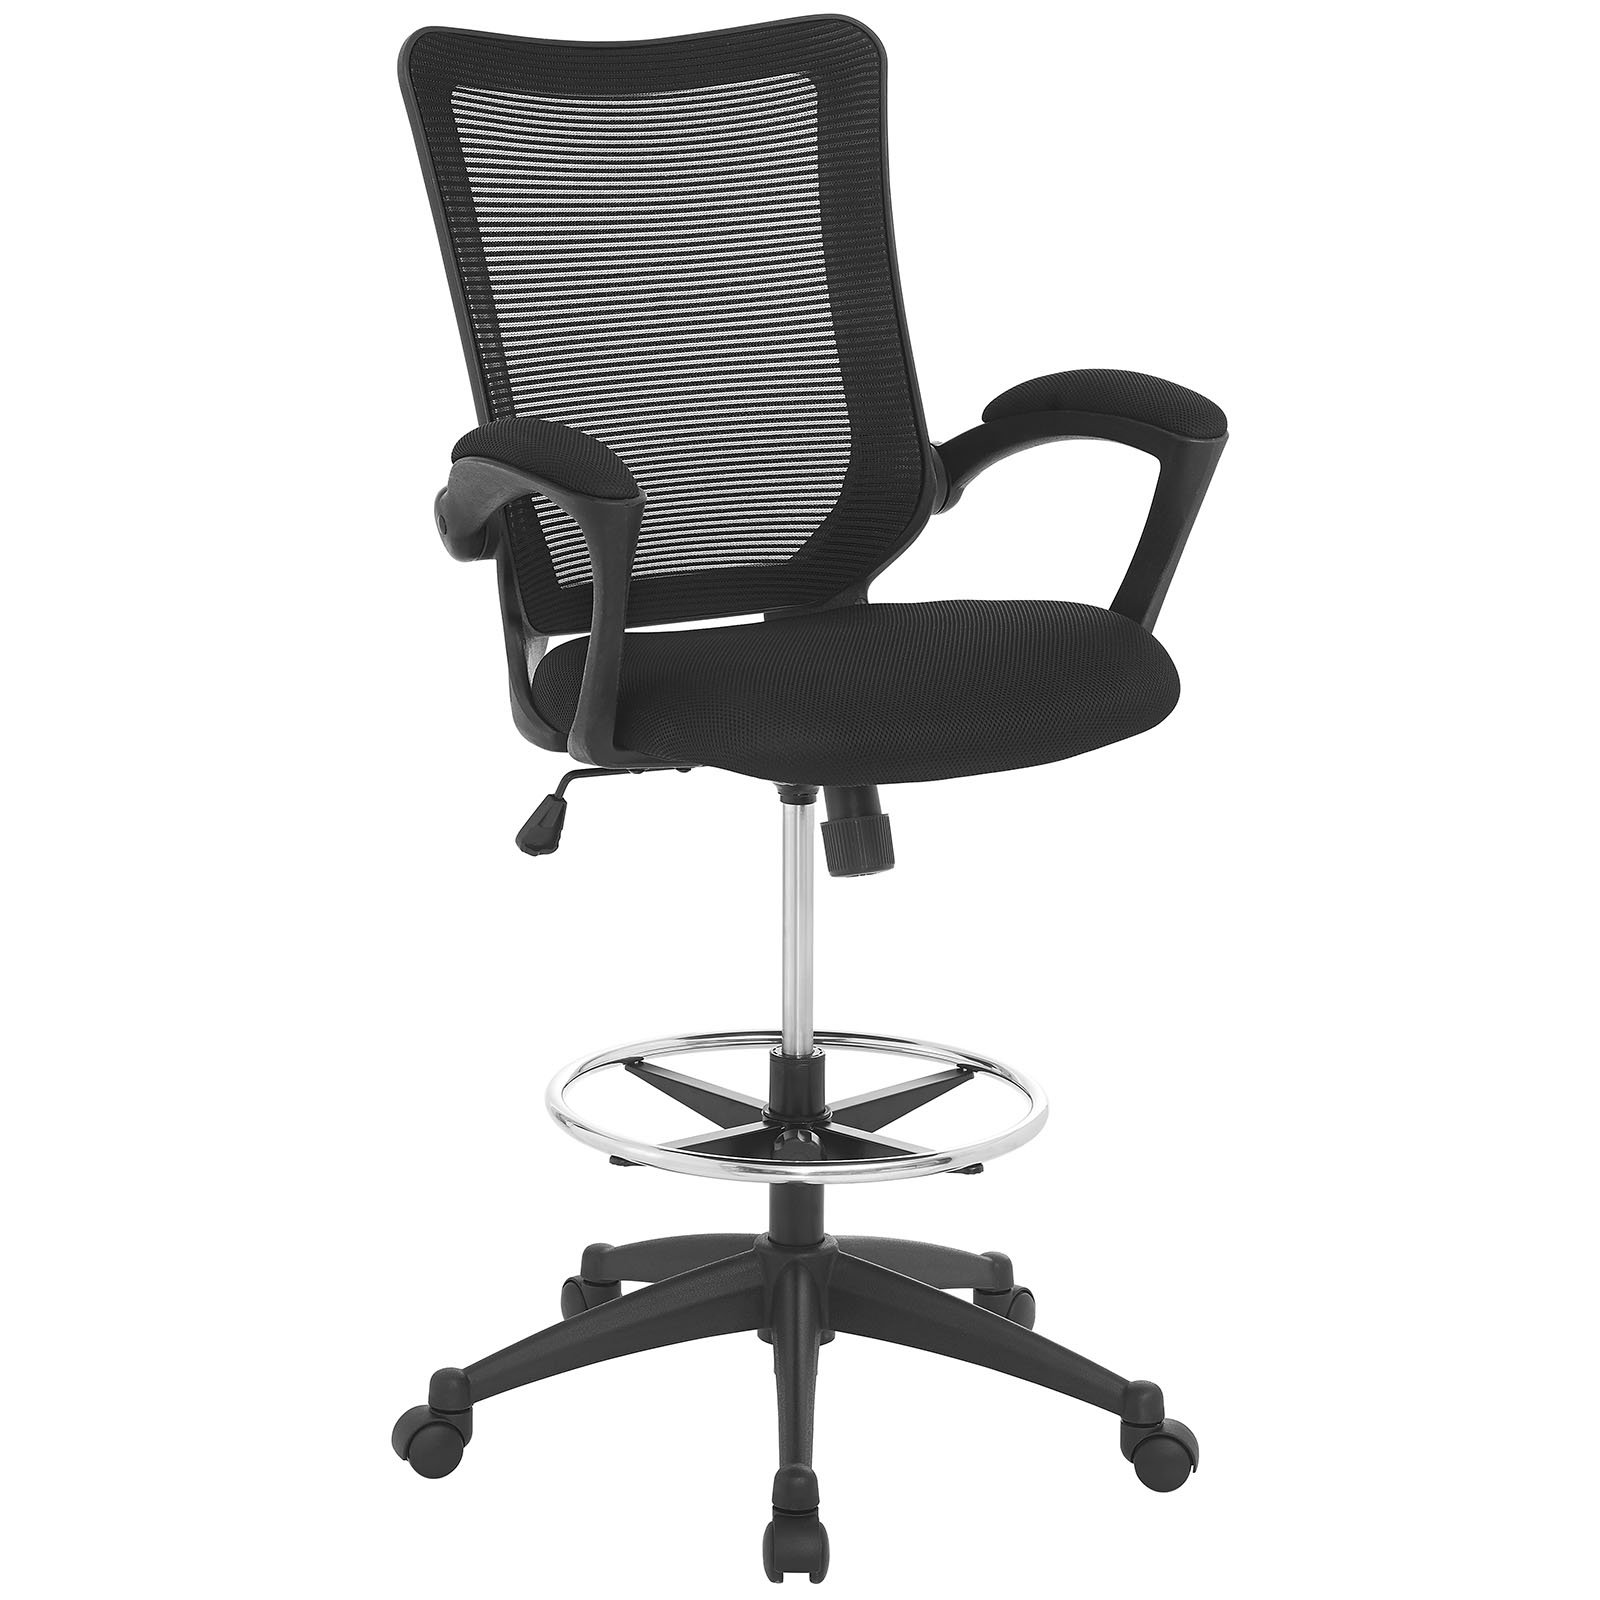 Modway Project Drafting Chair In Black - Reception Desk Chair - Tall Office Chair For Adjustable Standing Desks - Counter Height Drafting Table Chair…